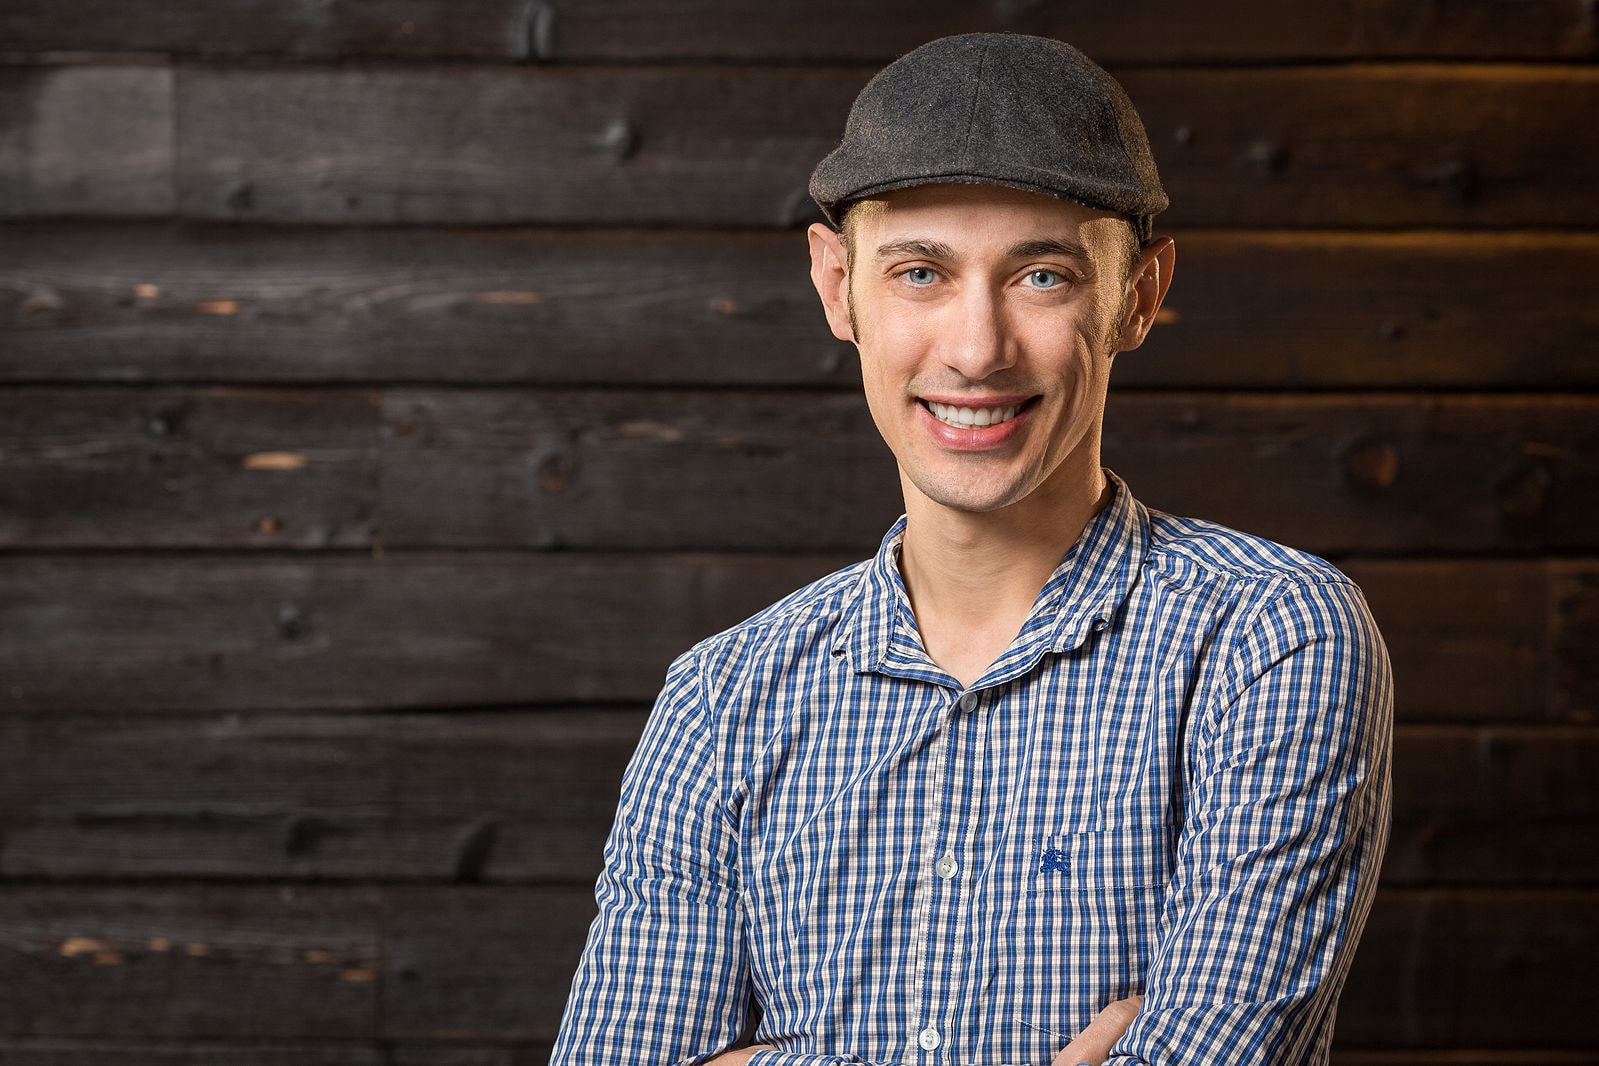 Tobias Lütke - Shopify CEO and founder